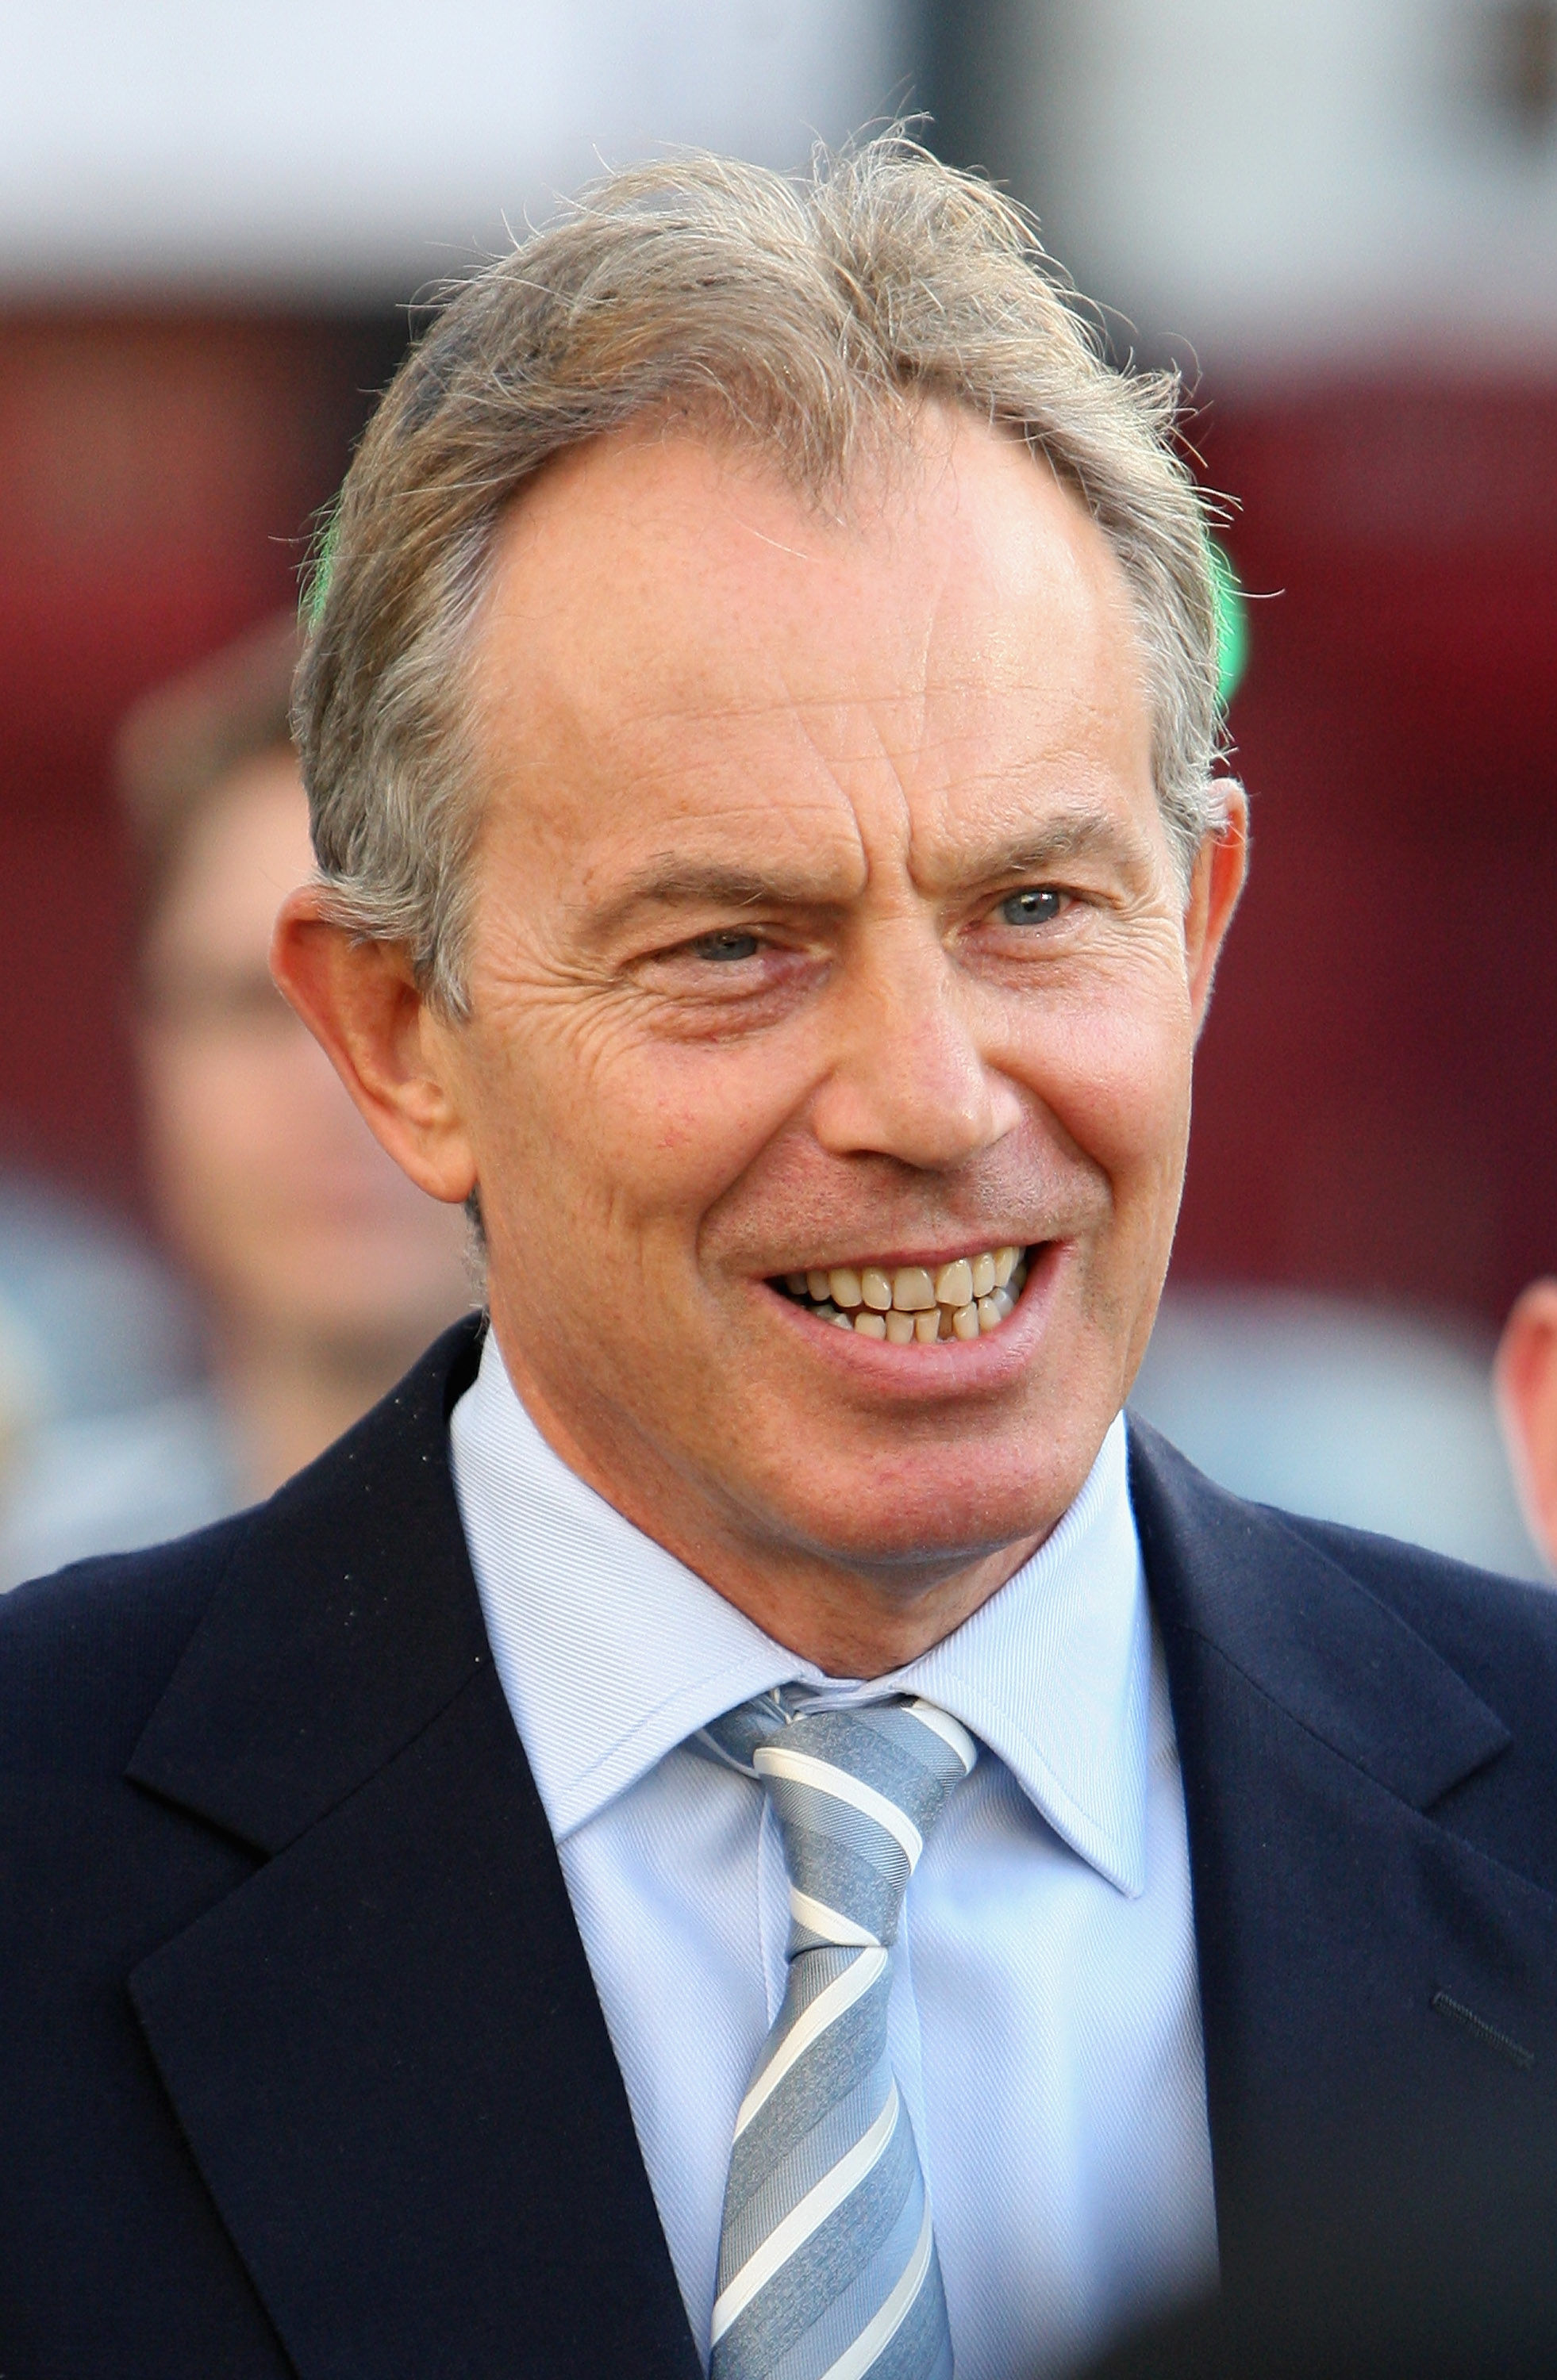 """Tony Blair had a royal tiff with the Queen after he referred to the late Princess Diana as """"the People's Princess,"""" but they found common ground when the Queen addressed the nation following Diana's death."""